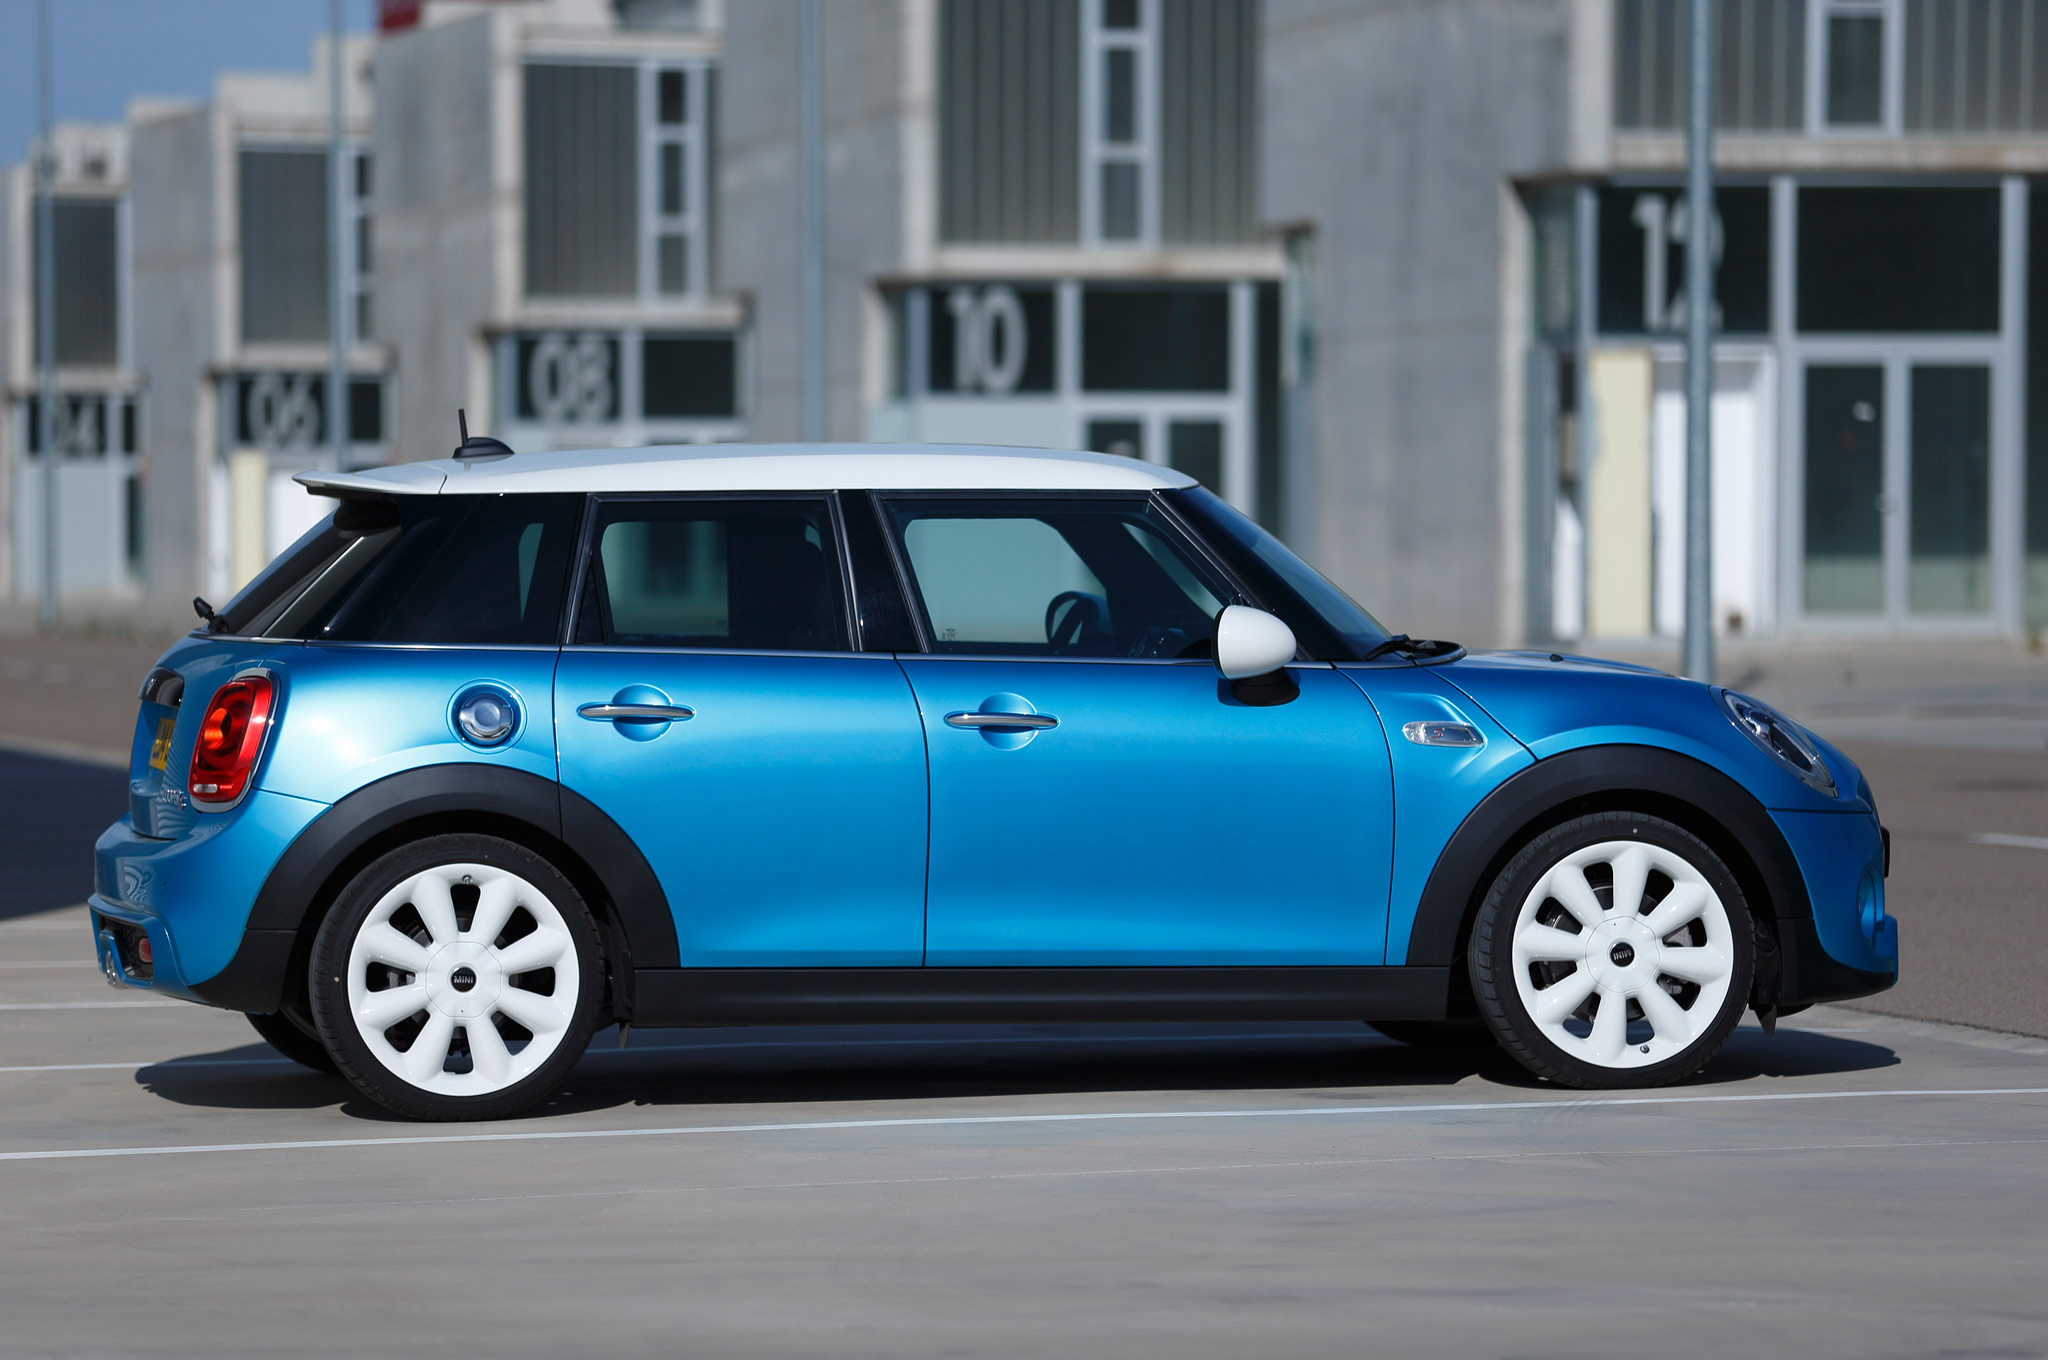 Le Meilleur Mini Cooper 4 Door 21 High Resolution Car Wallpaper Ce Mois Ci